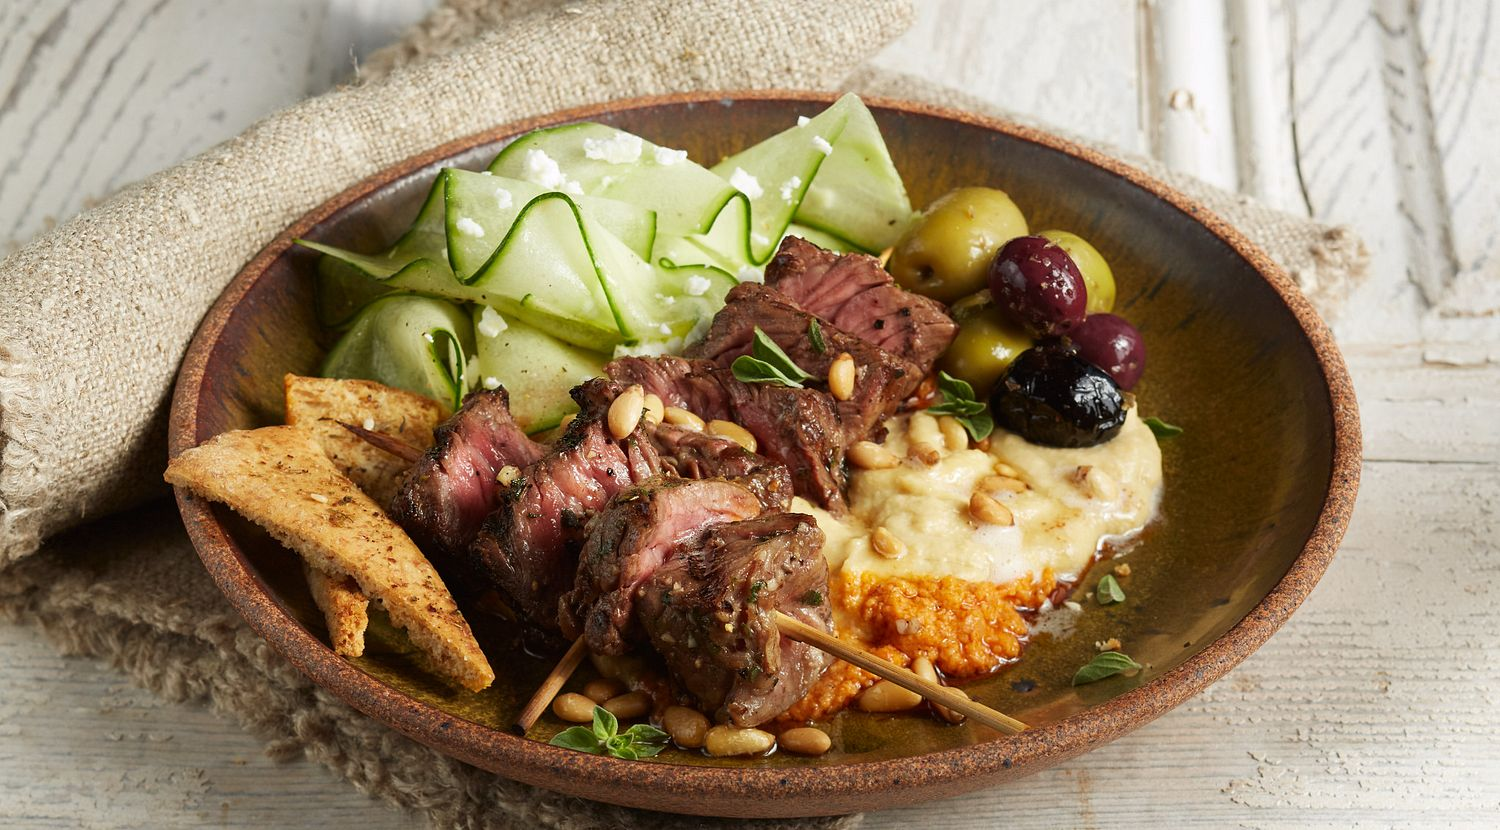 Greek Beef Steak and Hummus Plate